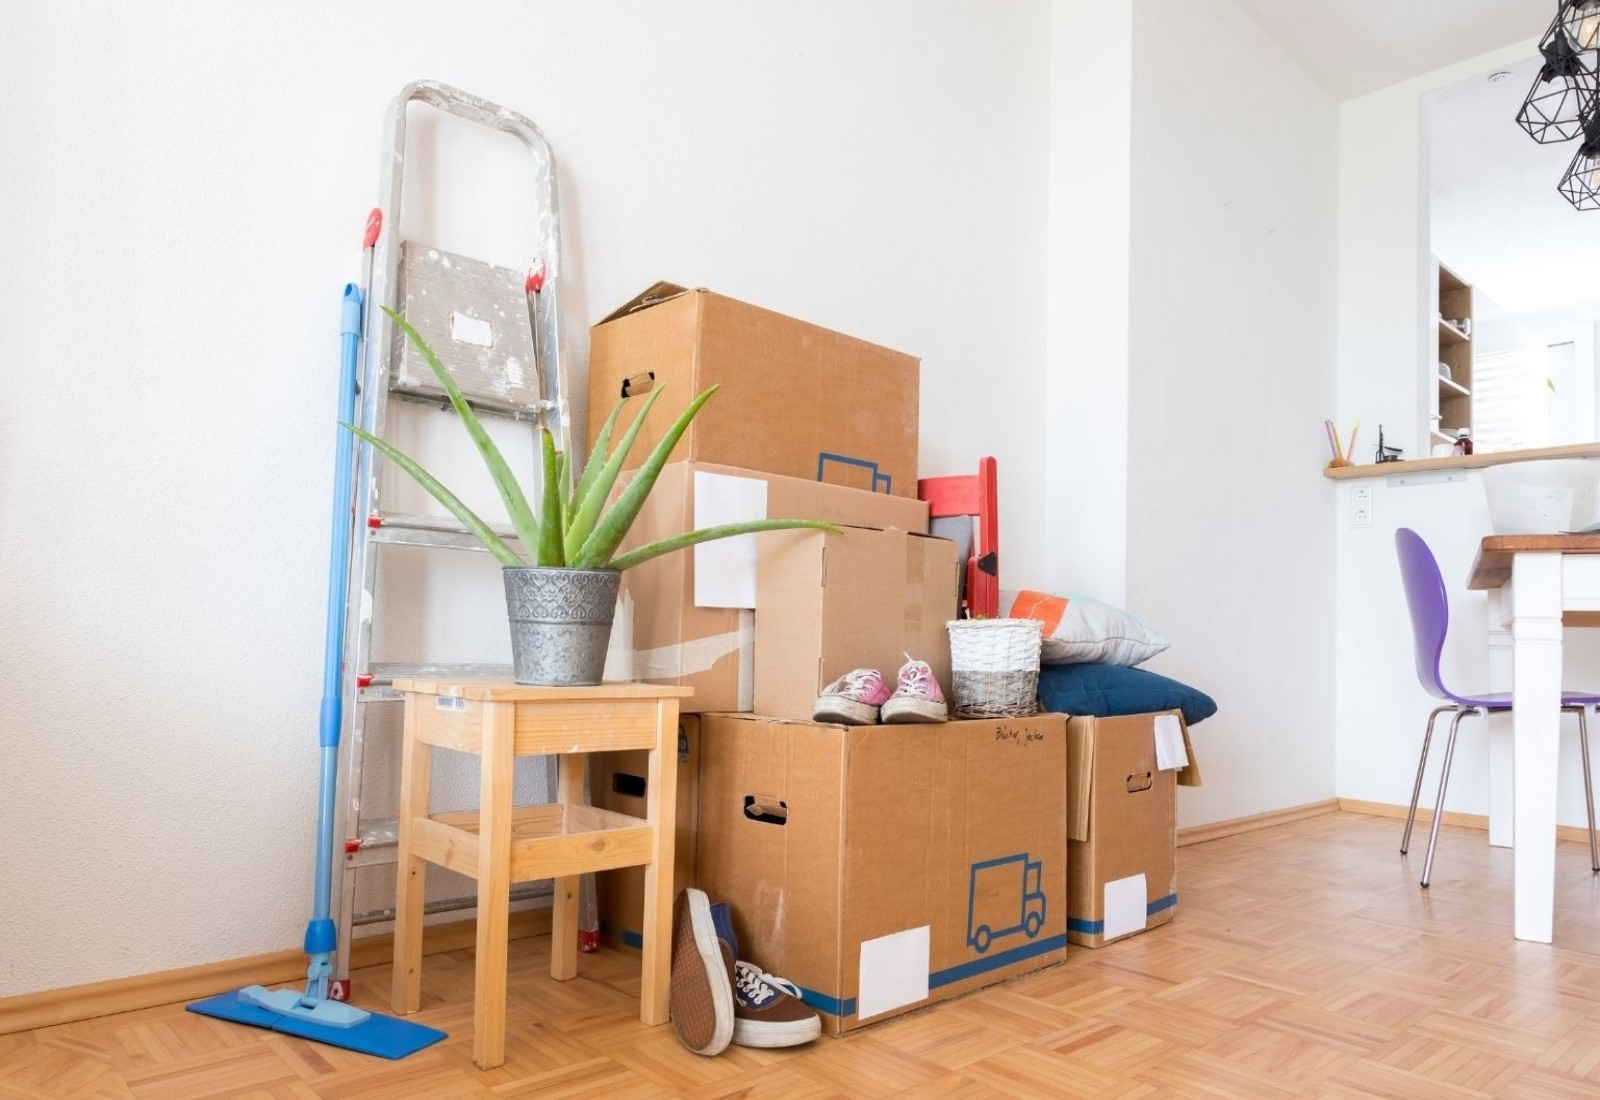 Move out clean cleaning moving residential home